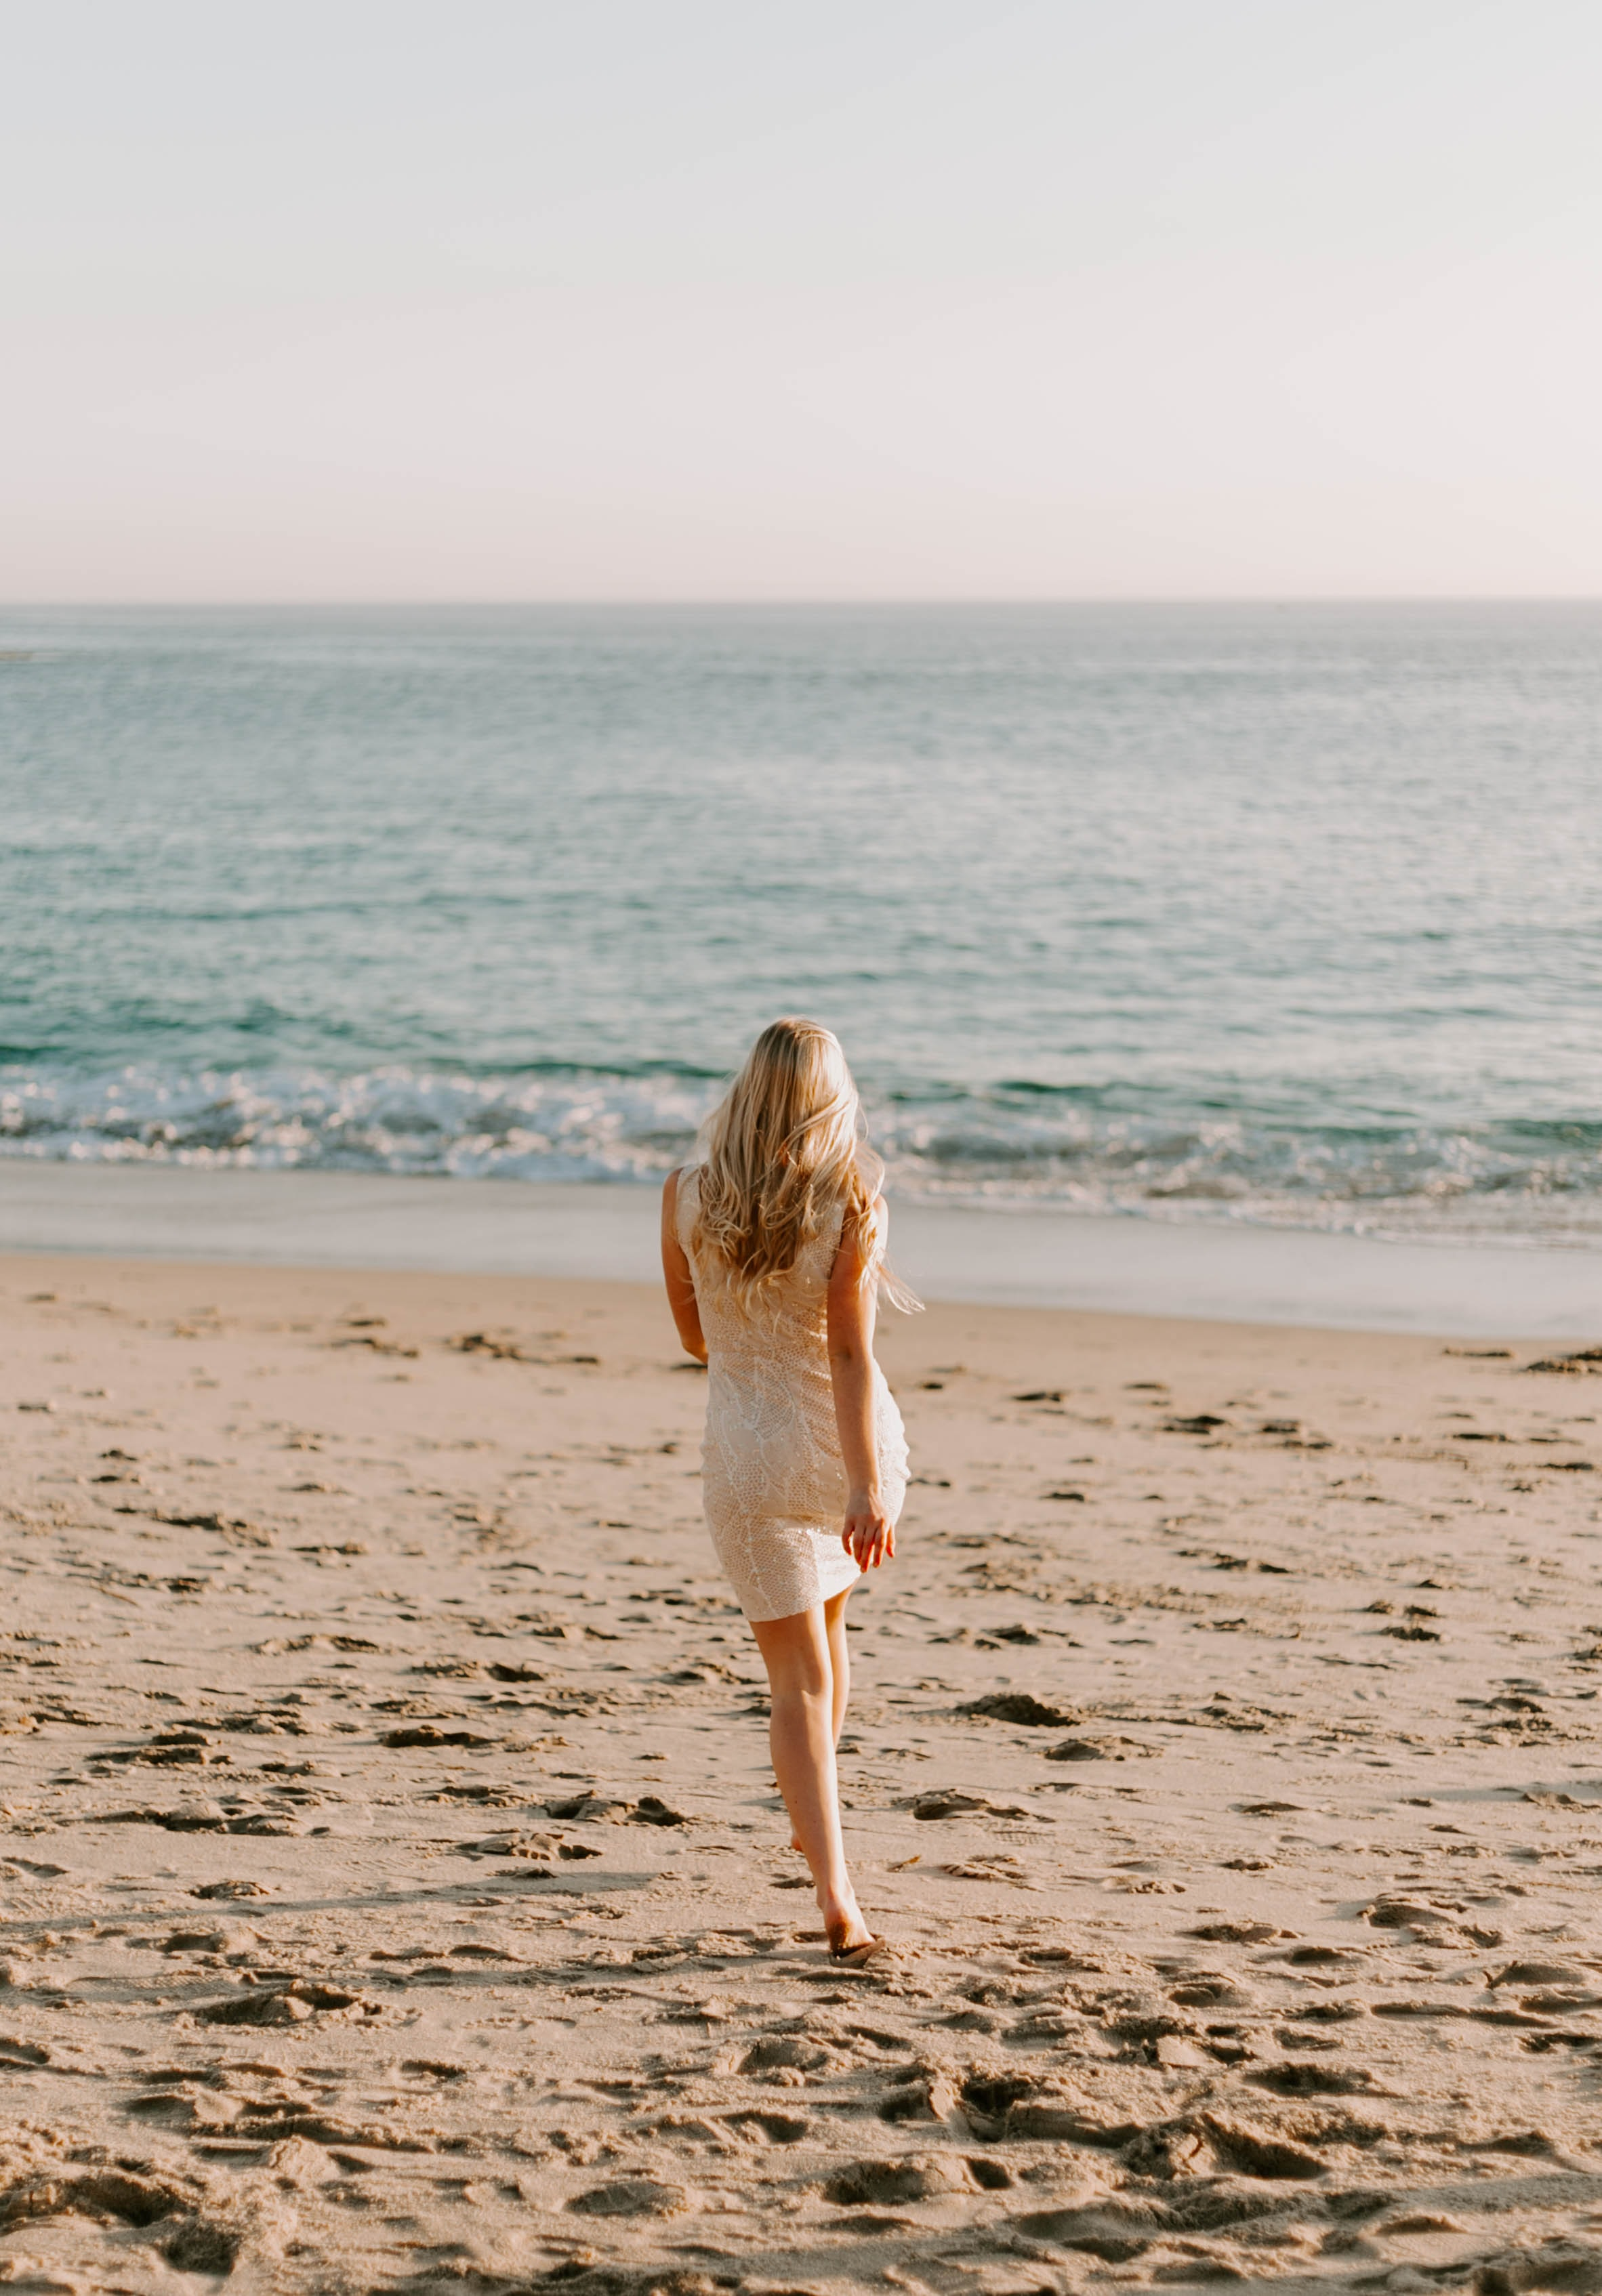 woman walking on beach overlooking sea during daytime